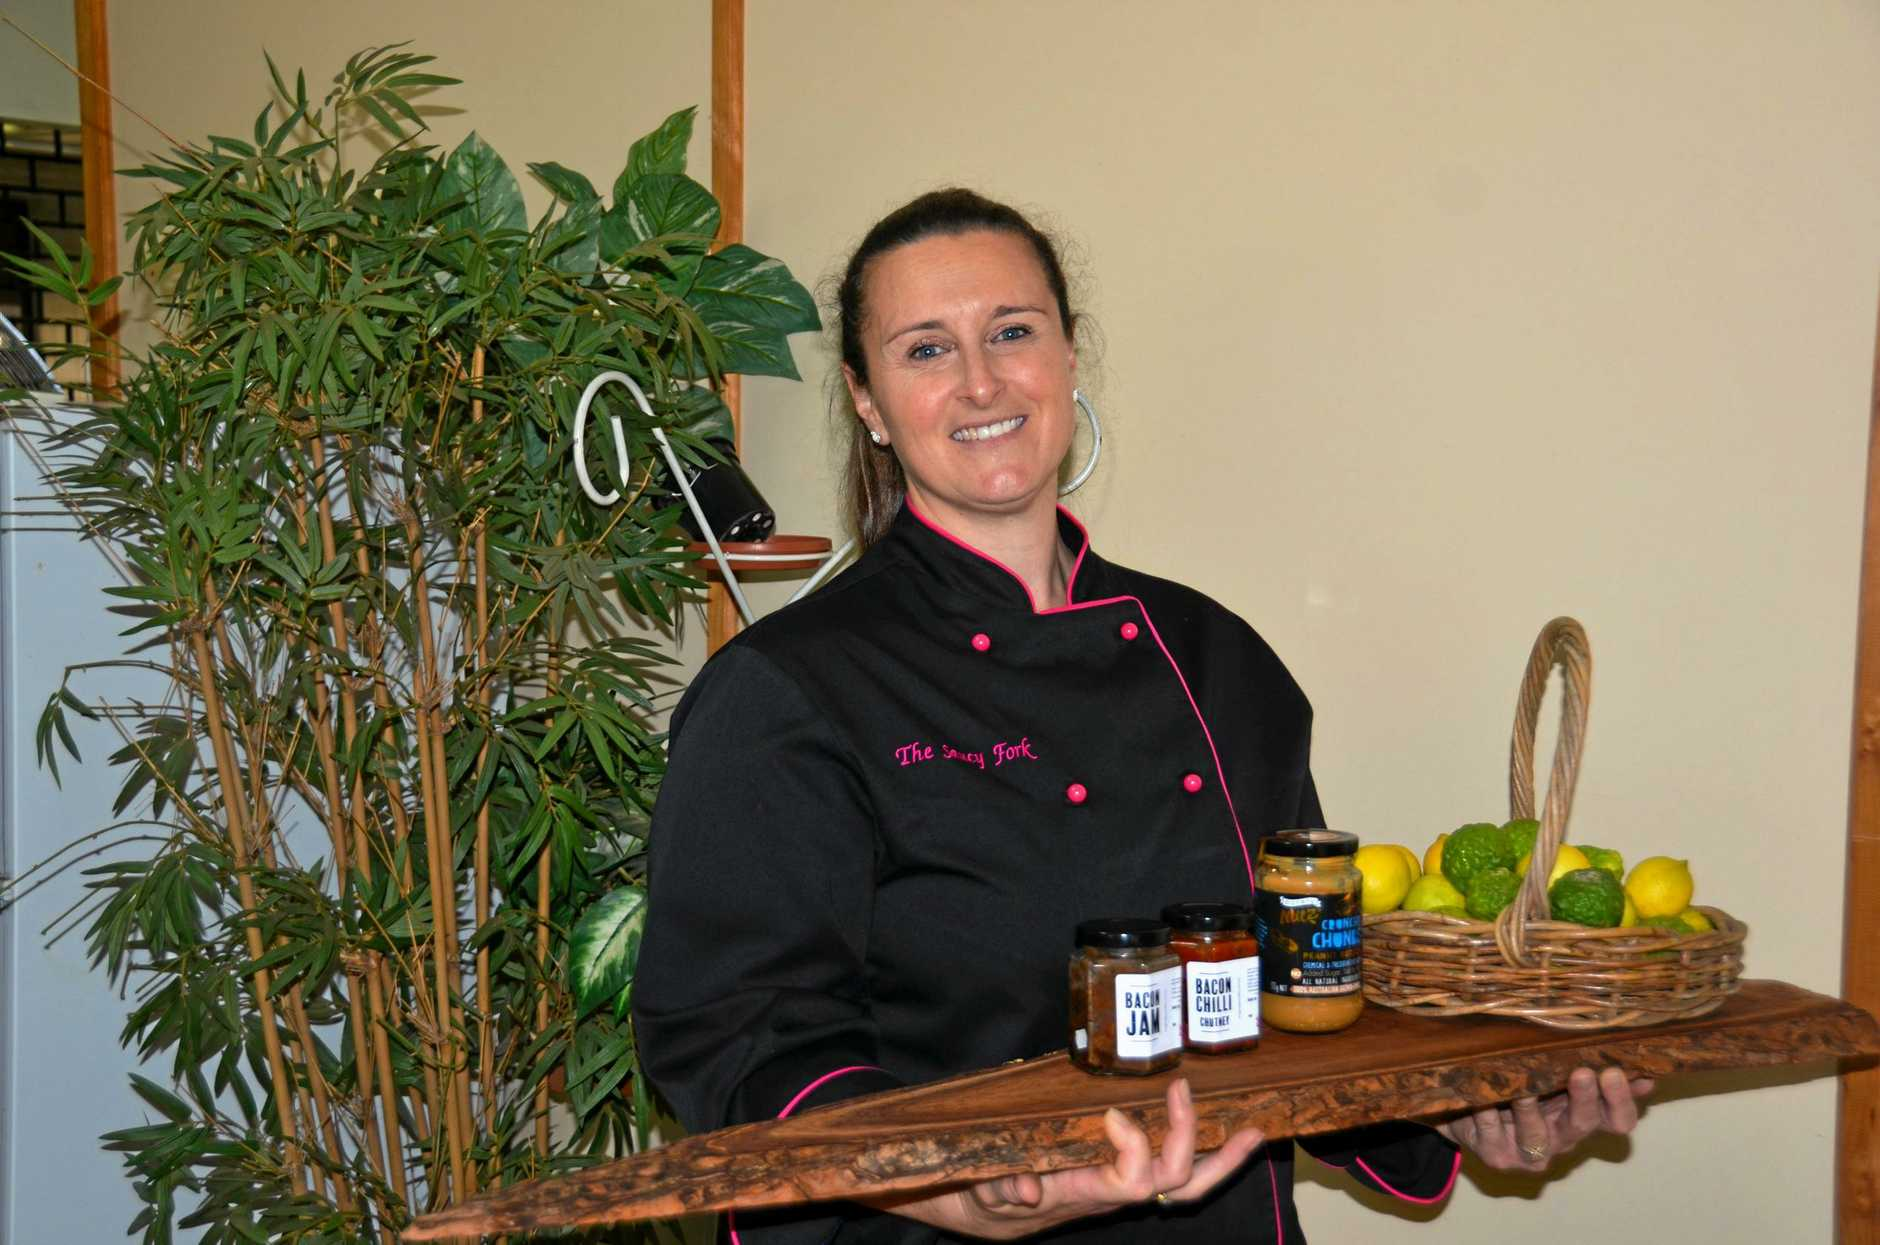 BACONFEST: Roberta Schablon is making sure local produce is one of the main themes of BaconFest.